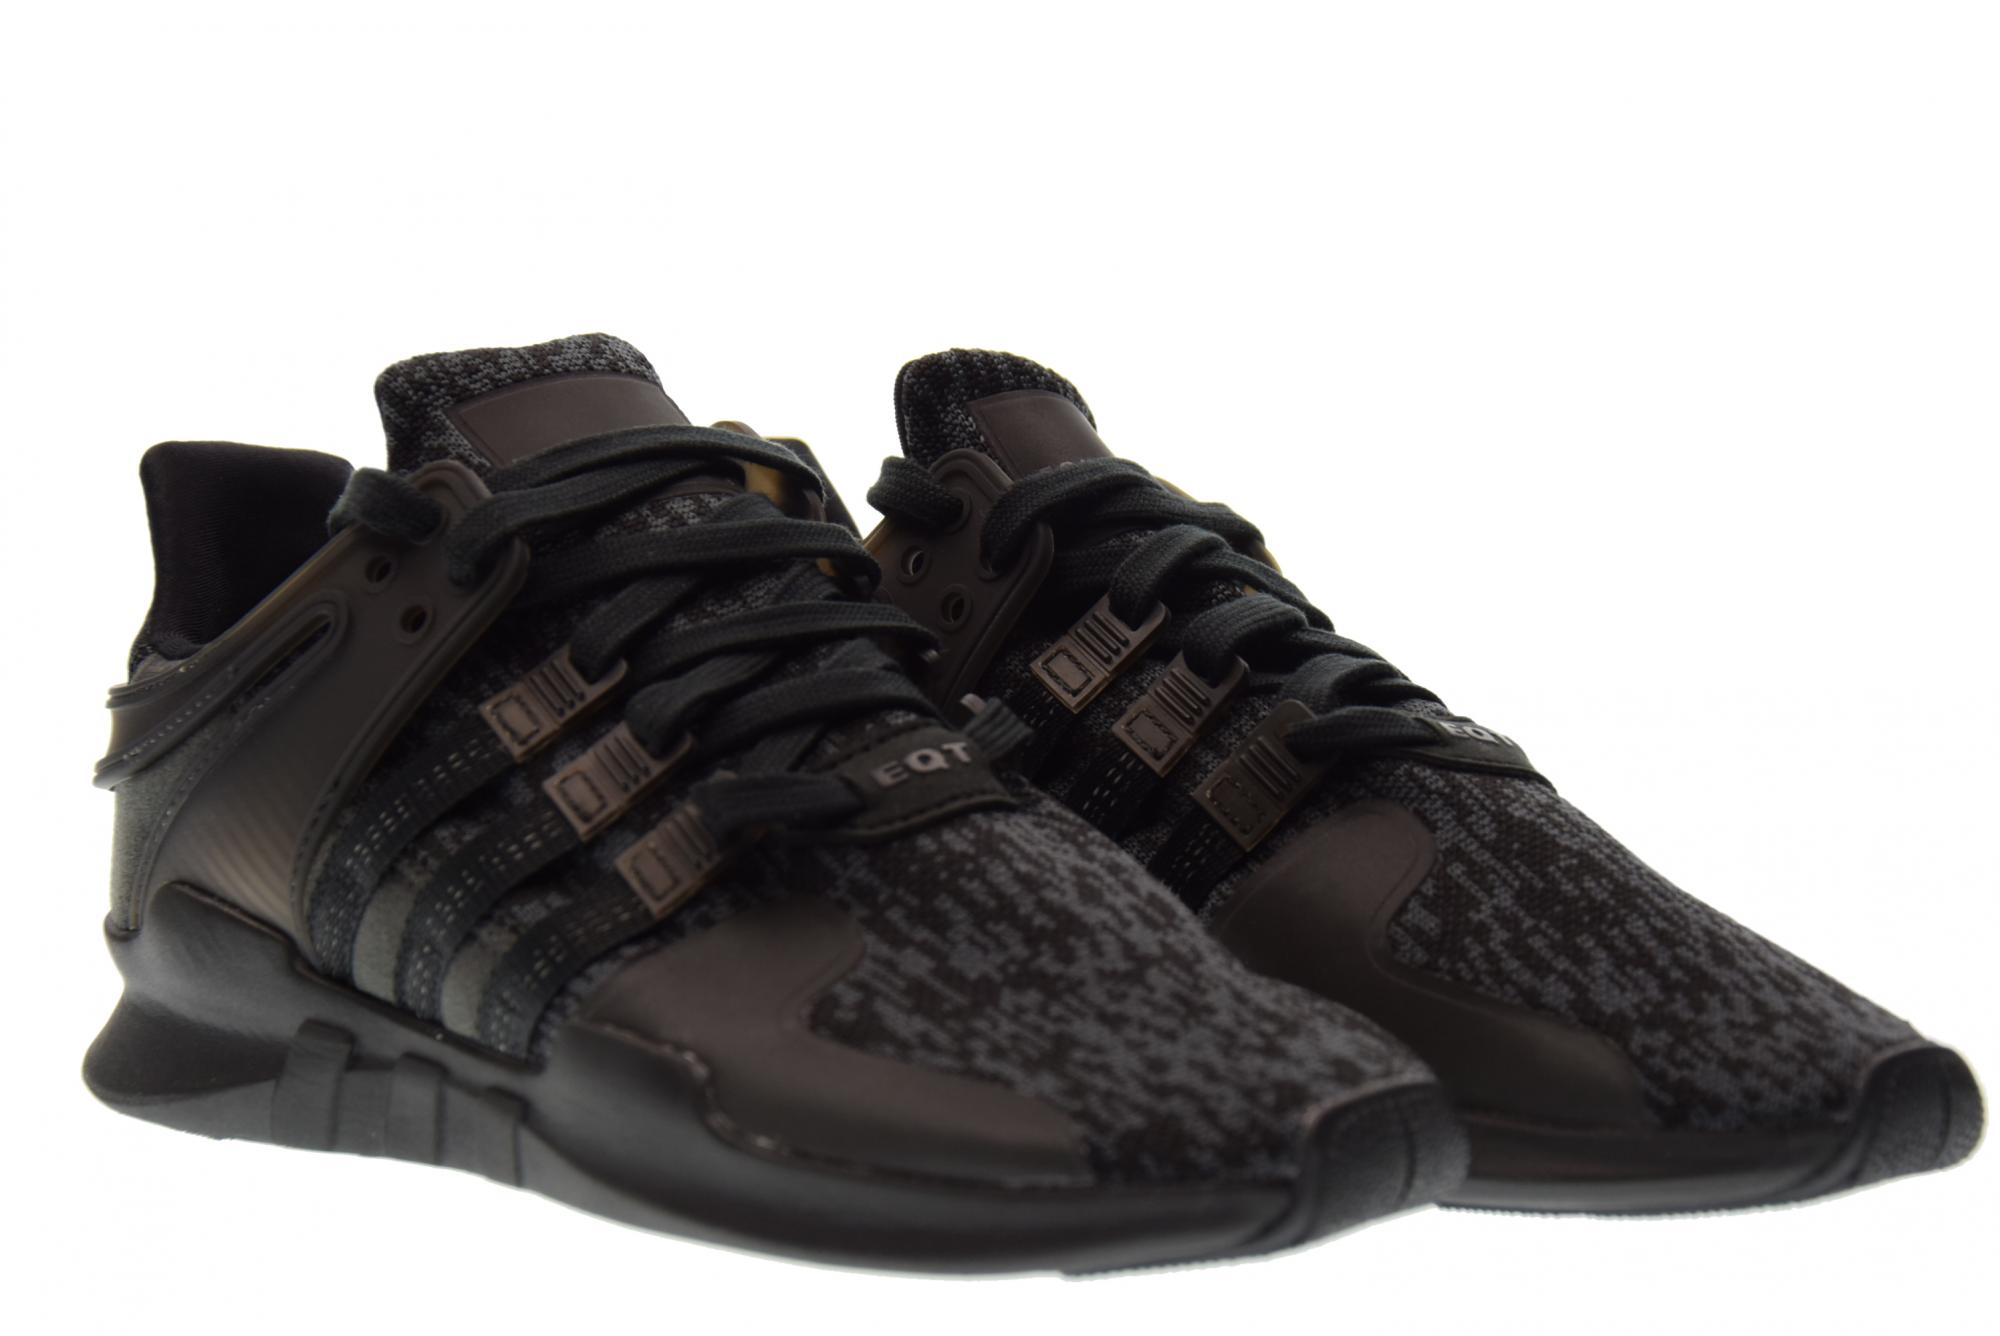 premium selection 2ec7e 68ff5 Adidas scarpe uomo sneakers basse BY9589 EQT SUPPORT ADV P18